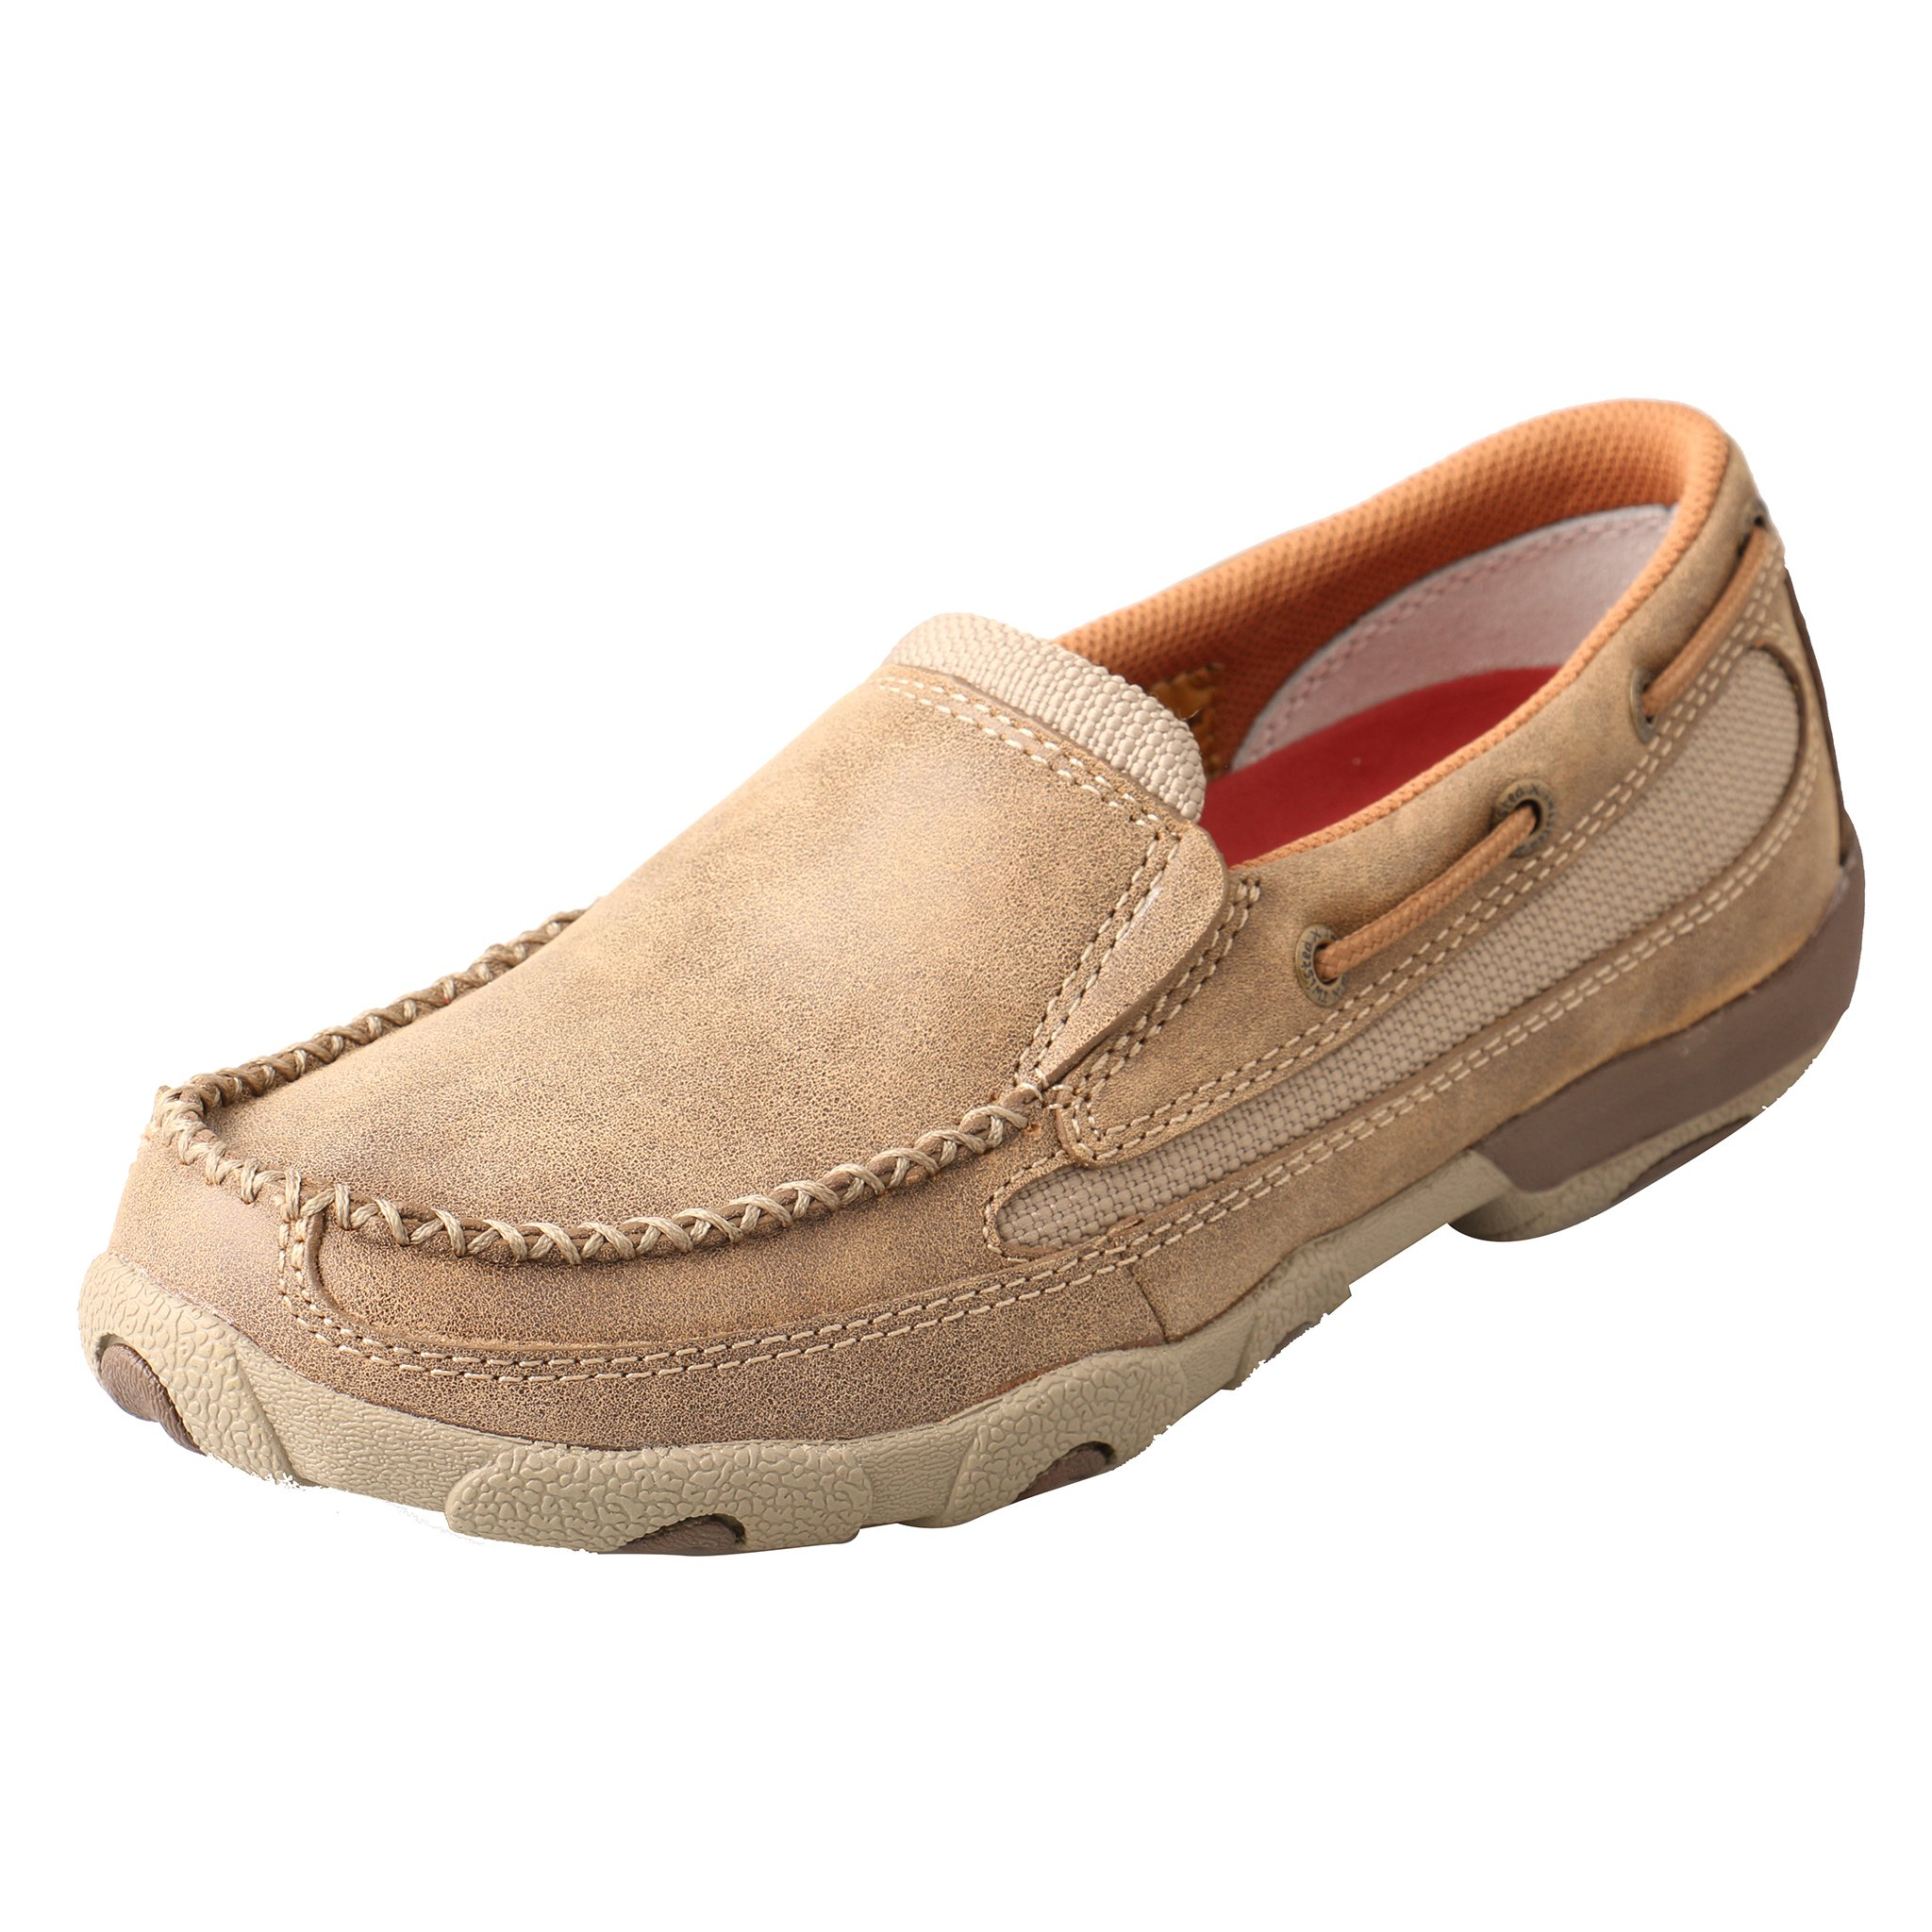 Twisted X Women's Leather Slip-On Rubber Sole Moc Toe Driving Moccasins - Bomber